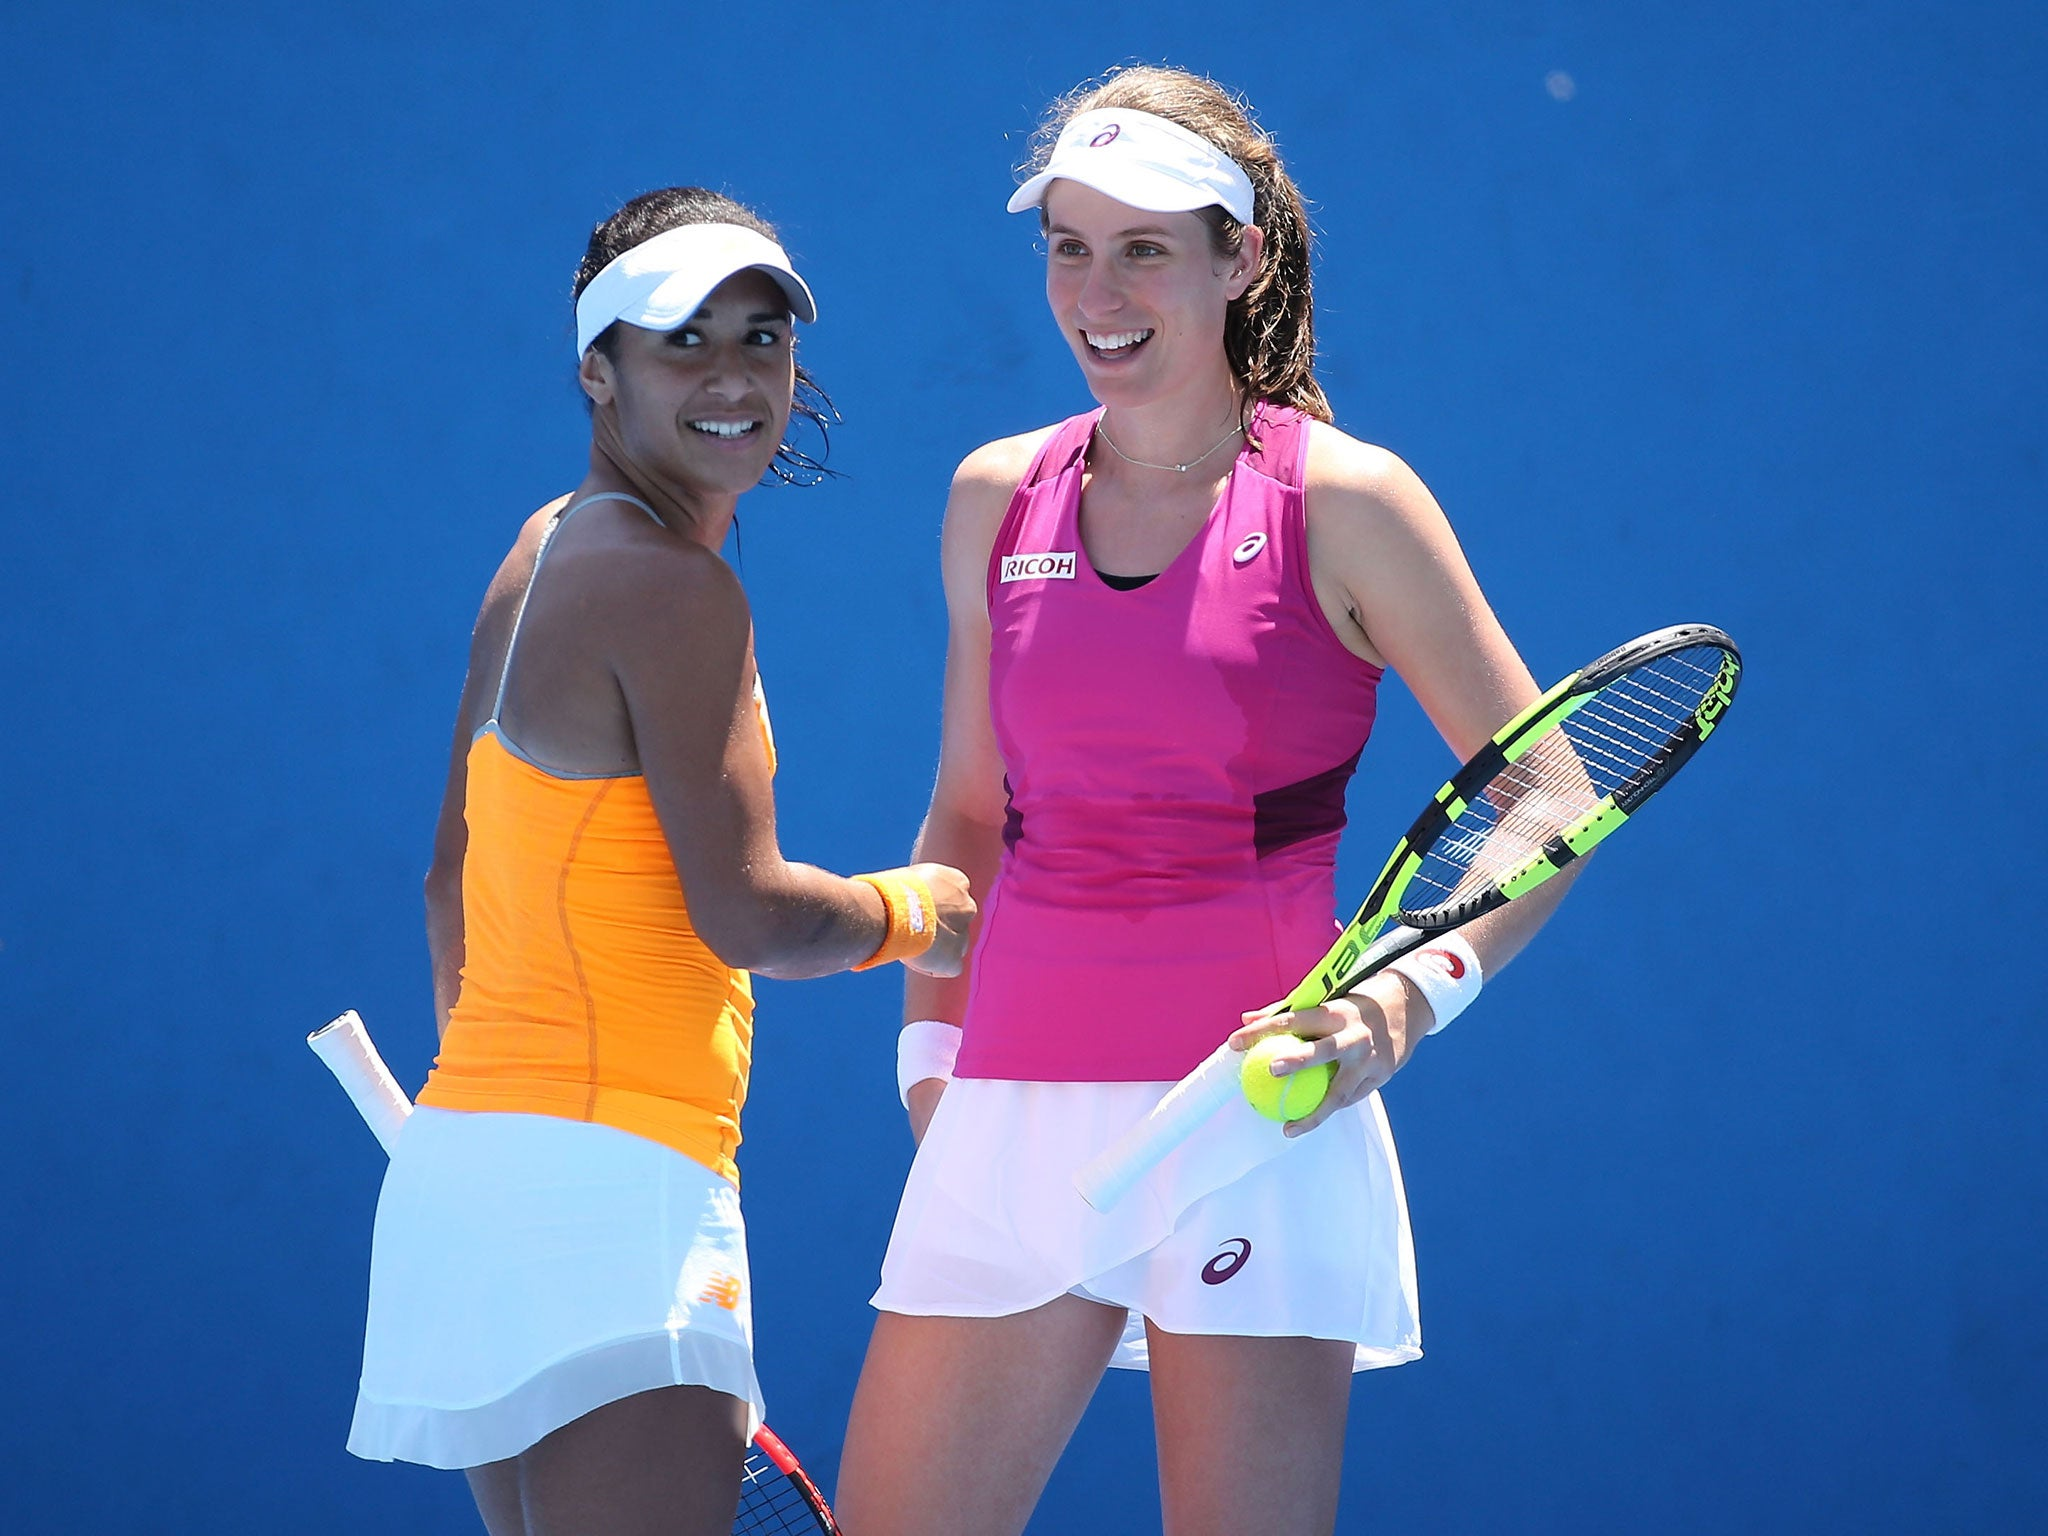 Johanna Konta and Heather Watson during the Australian Open